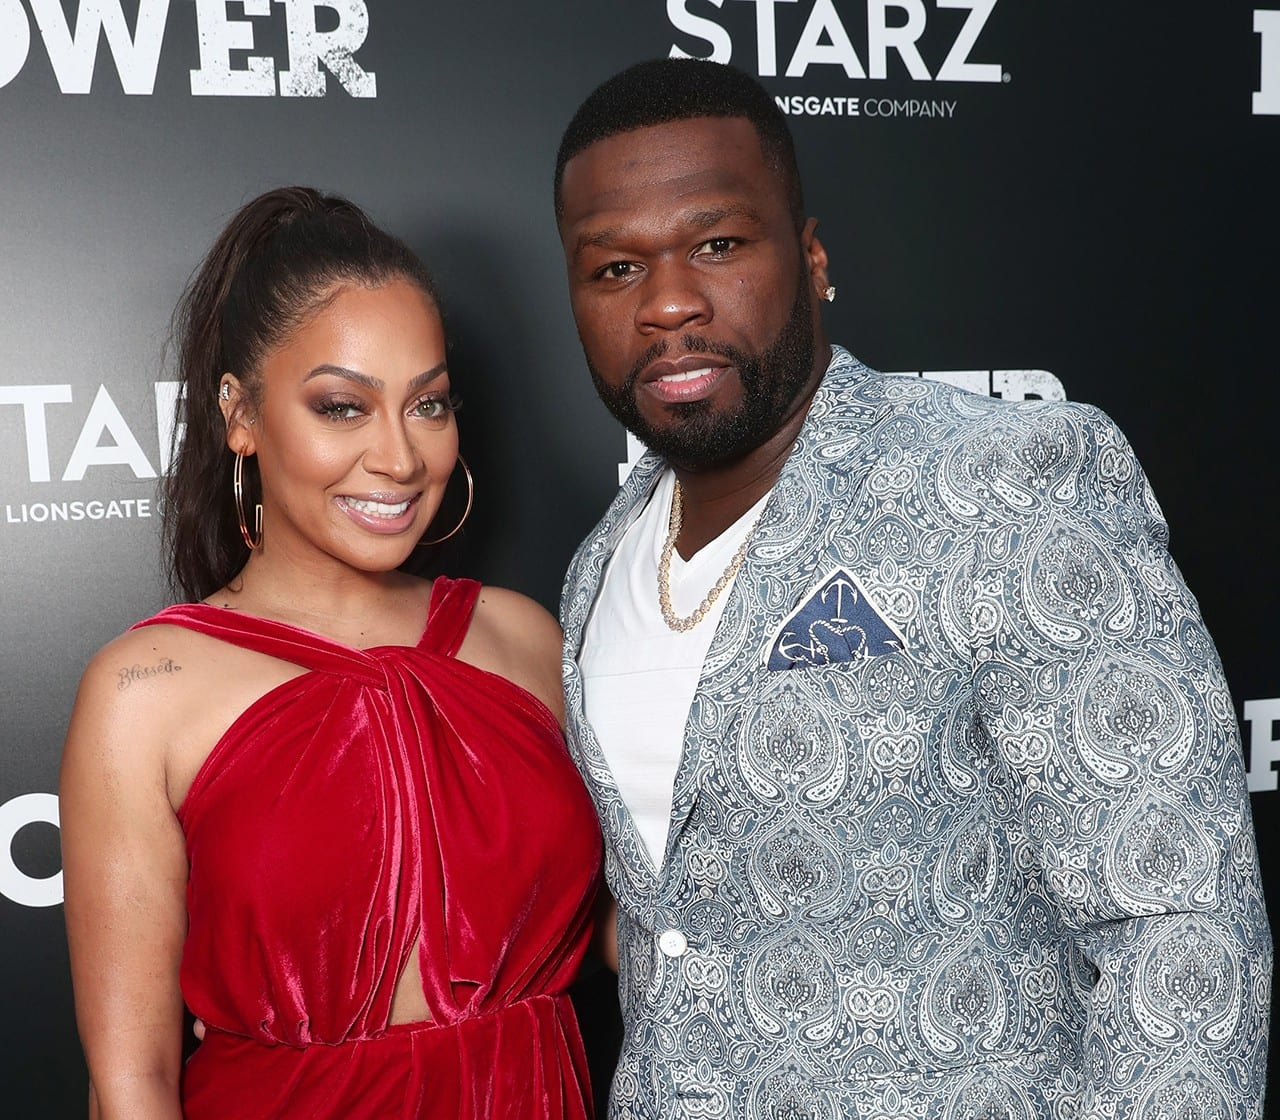 50 Cent Joins Forces With La La Anthony for New Starz Series